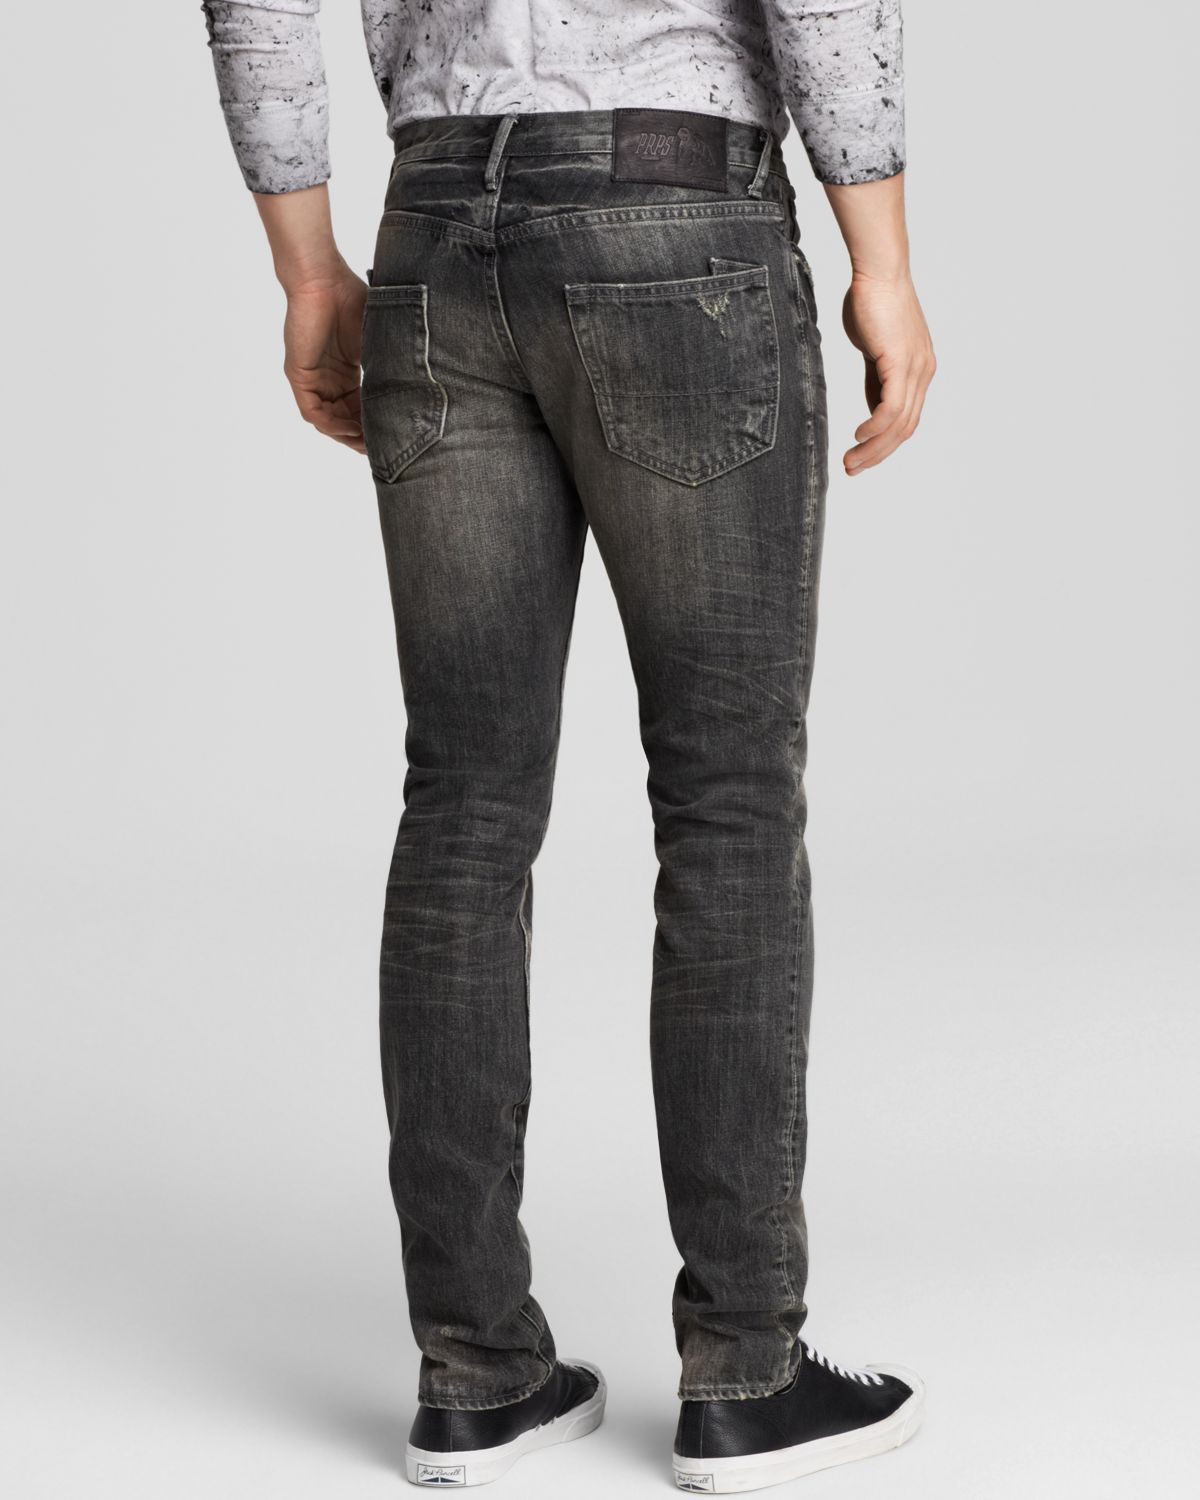 PRPS Jeans - Gremlin Fury New Tapered Fit In Black for Men